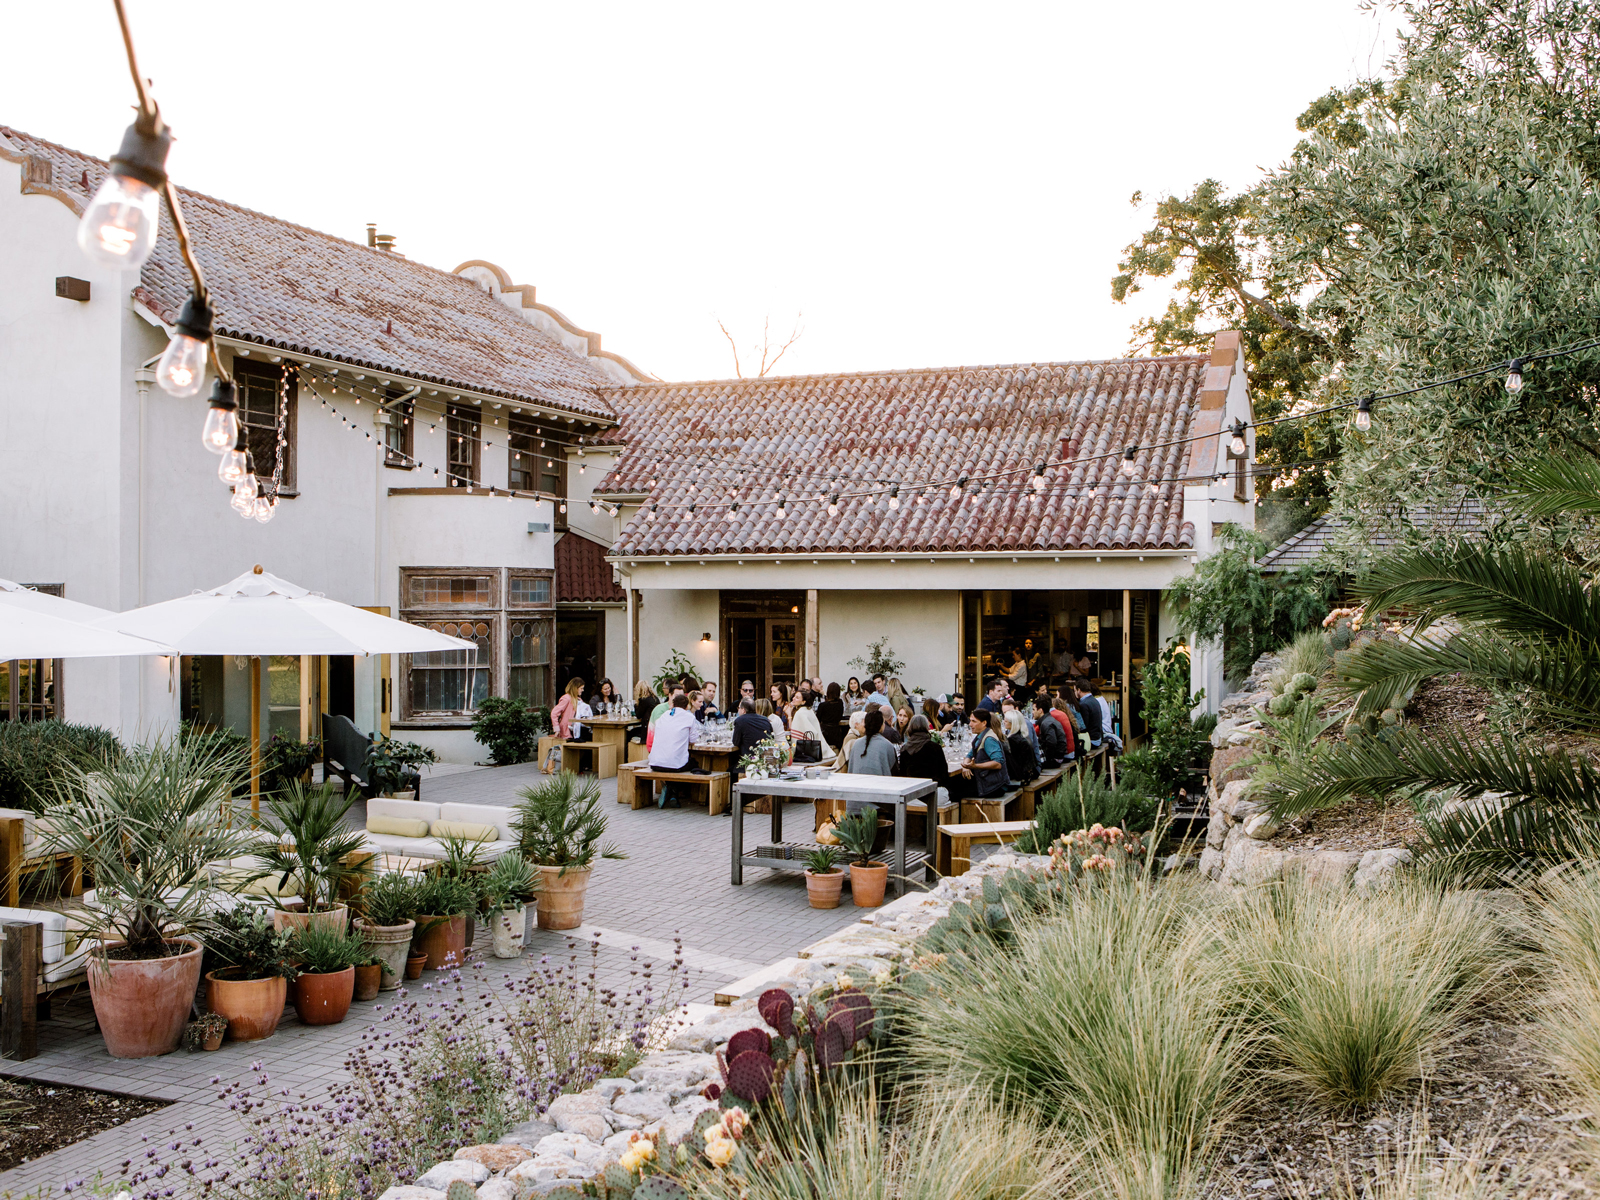 48 Hours in Sonoma: Where to Eat, Drink, and Stay